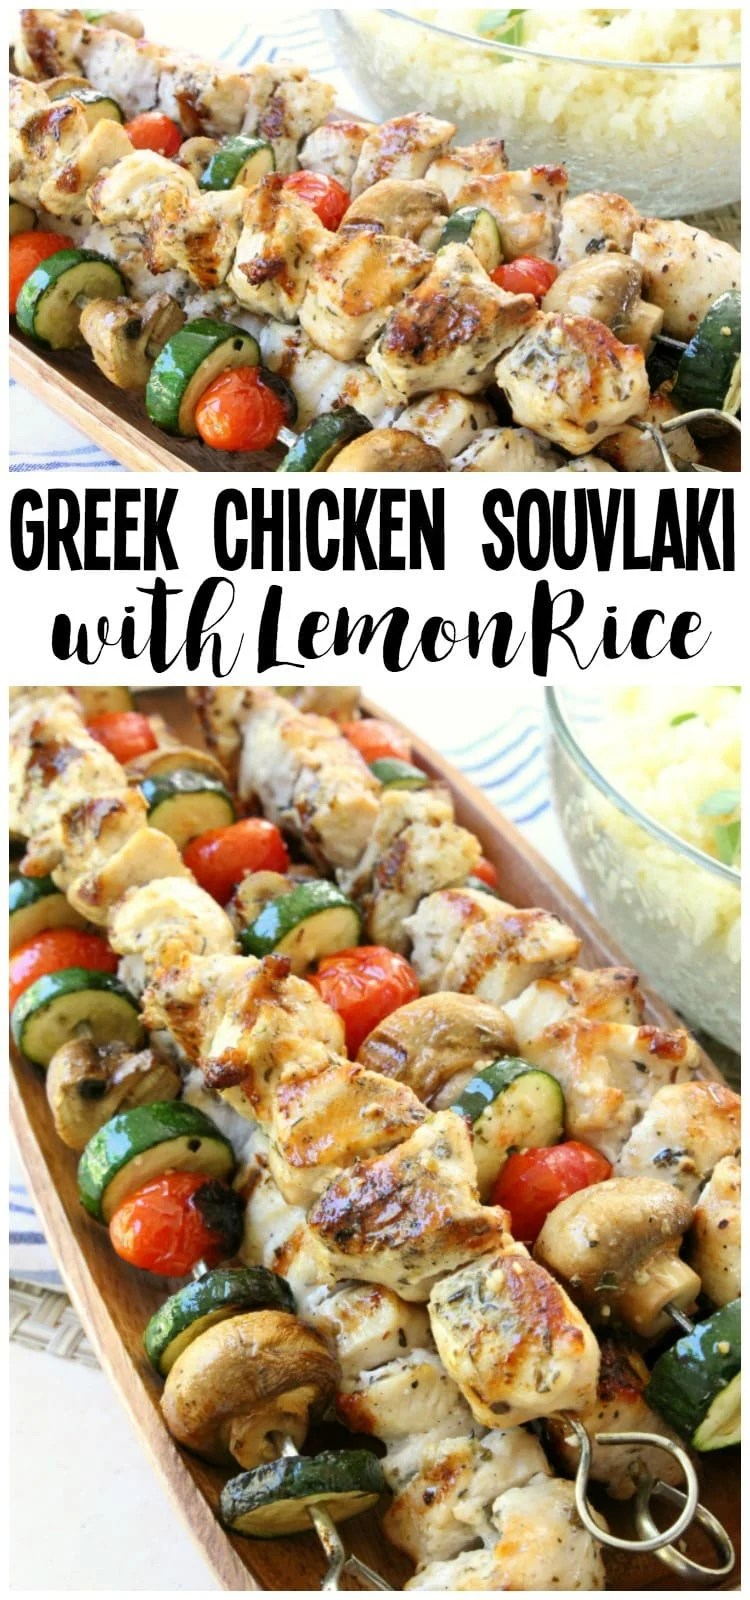 Greek Chicken Souvlaki grilled to perfection and served with Greek lemon rice. Best recipe for Greek Chicken Kabobs ever! Perfect weeknight dinner for anyone who loves the fresh, bright flavors of Greek food.